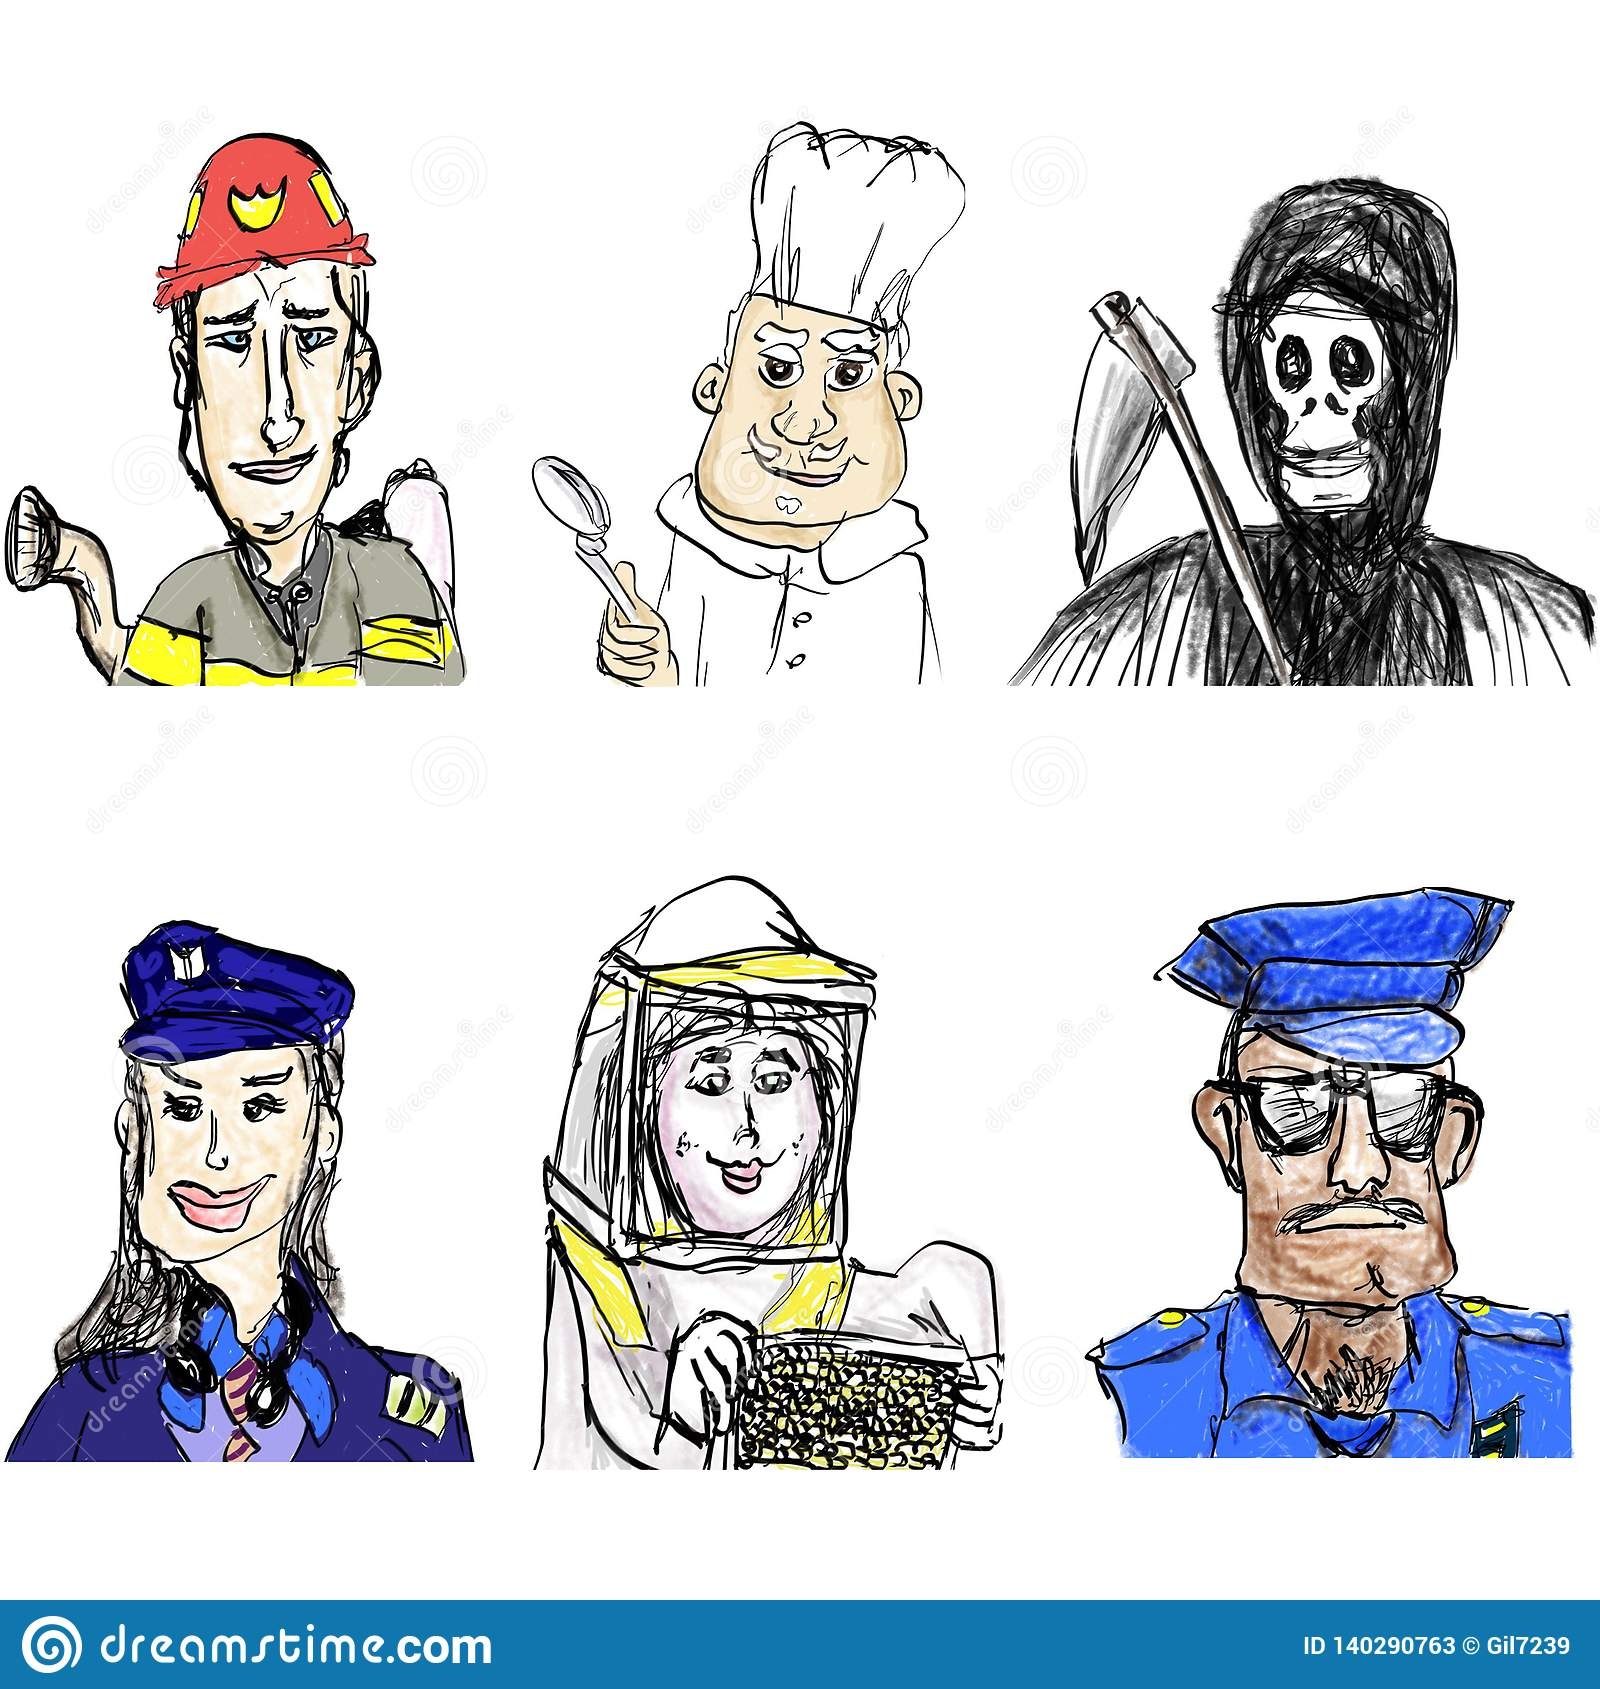 Fireman, Chef, Pilot Woman, Beekeeper, Policeman, Angel of Death